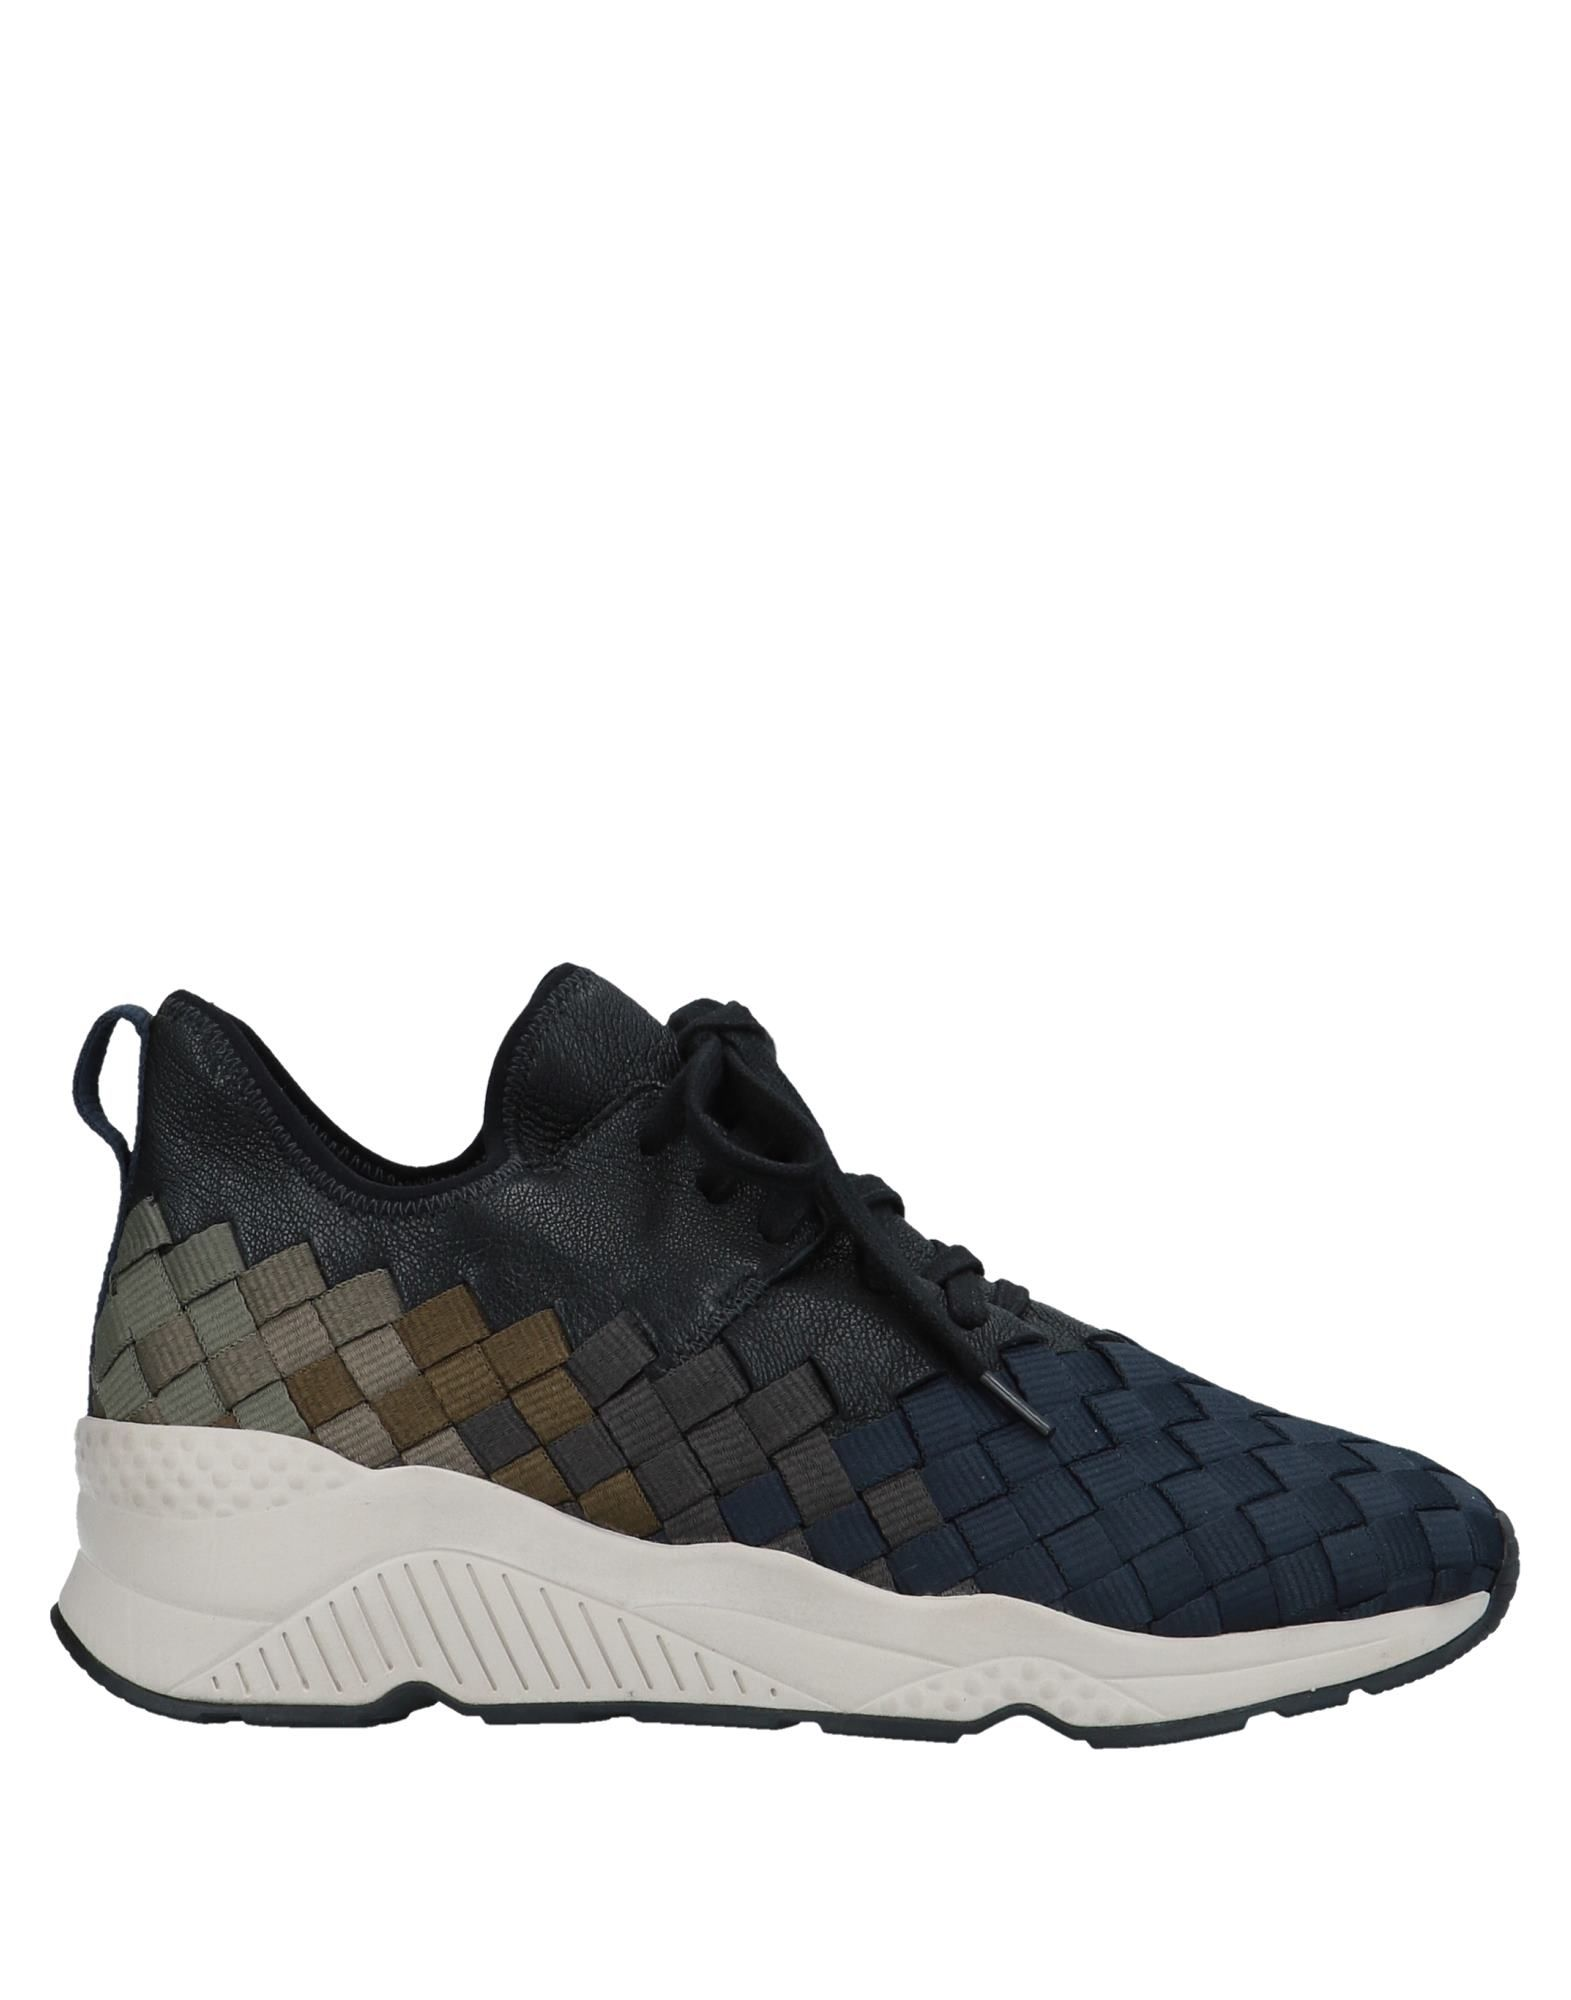 Ash on Sneakers - Women Ash Sneakers online on Ash  Canada - 11557850QS f436c8